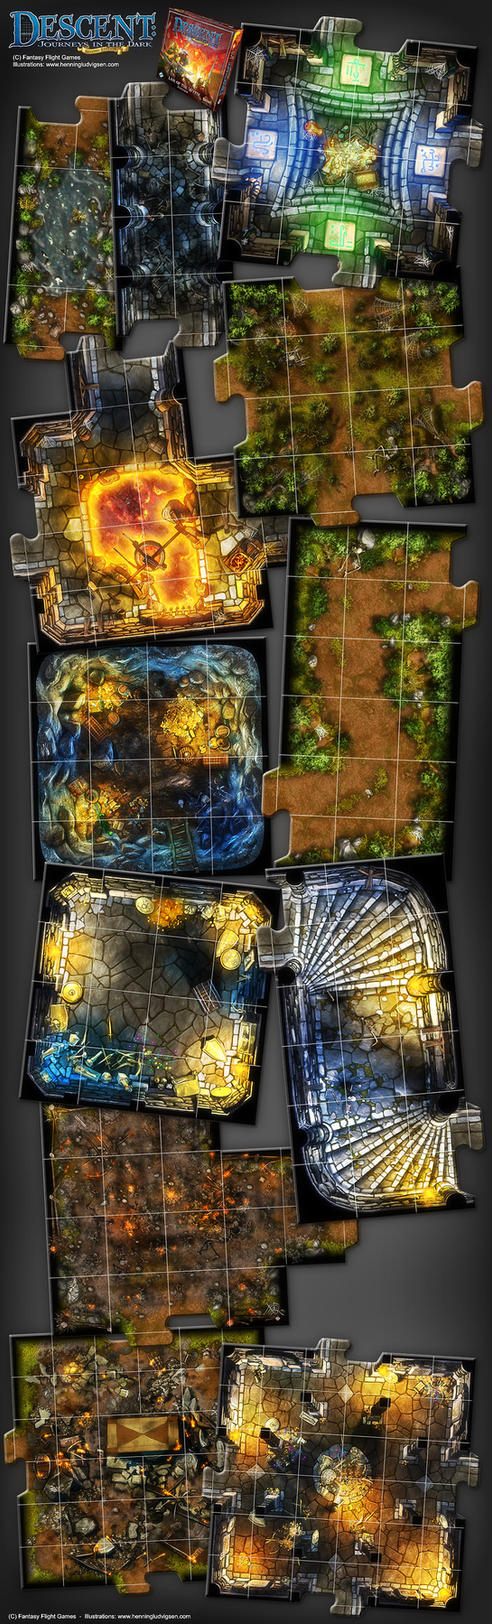 Descent 2nd edition - Lair of The Wyrm expansion by henning